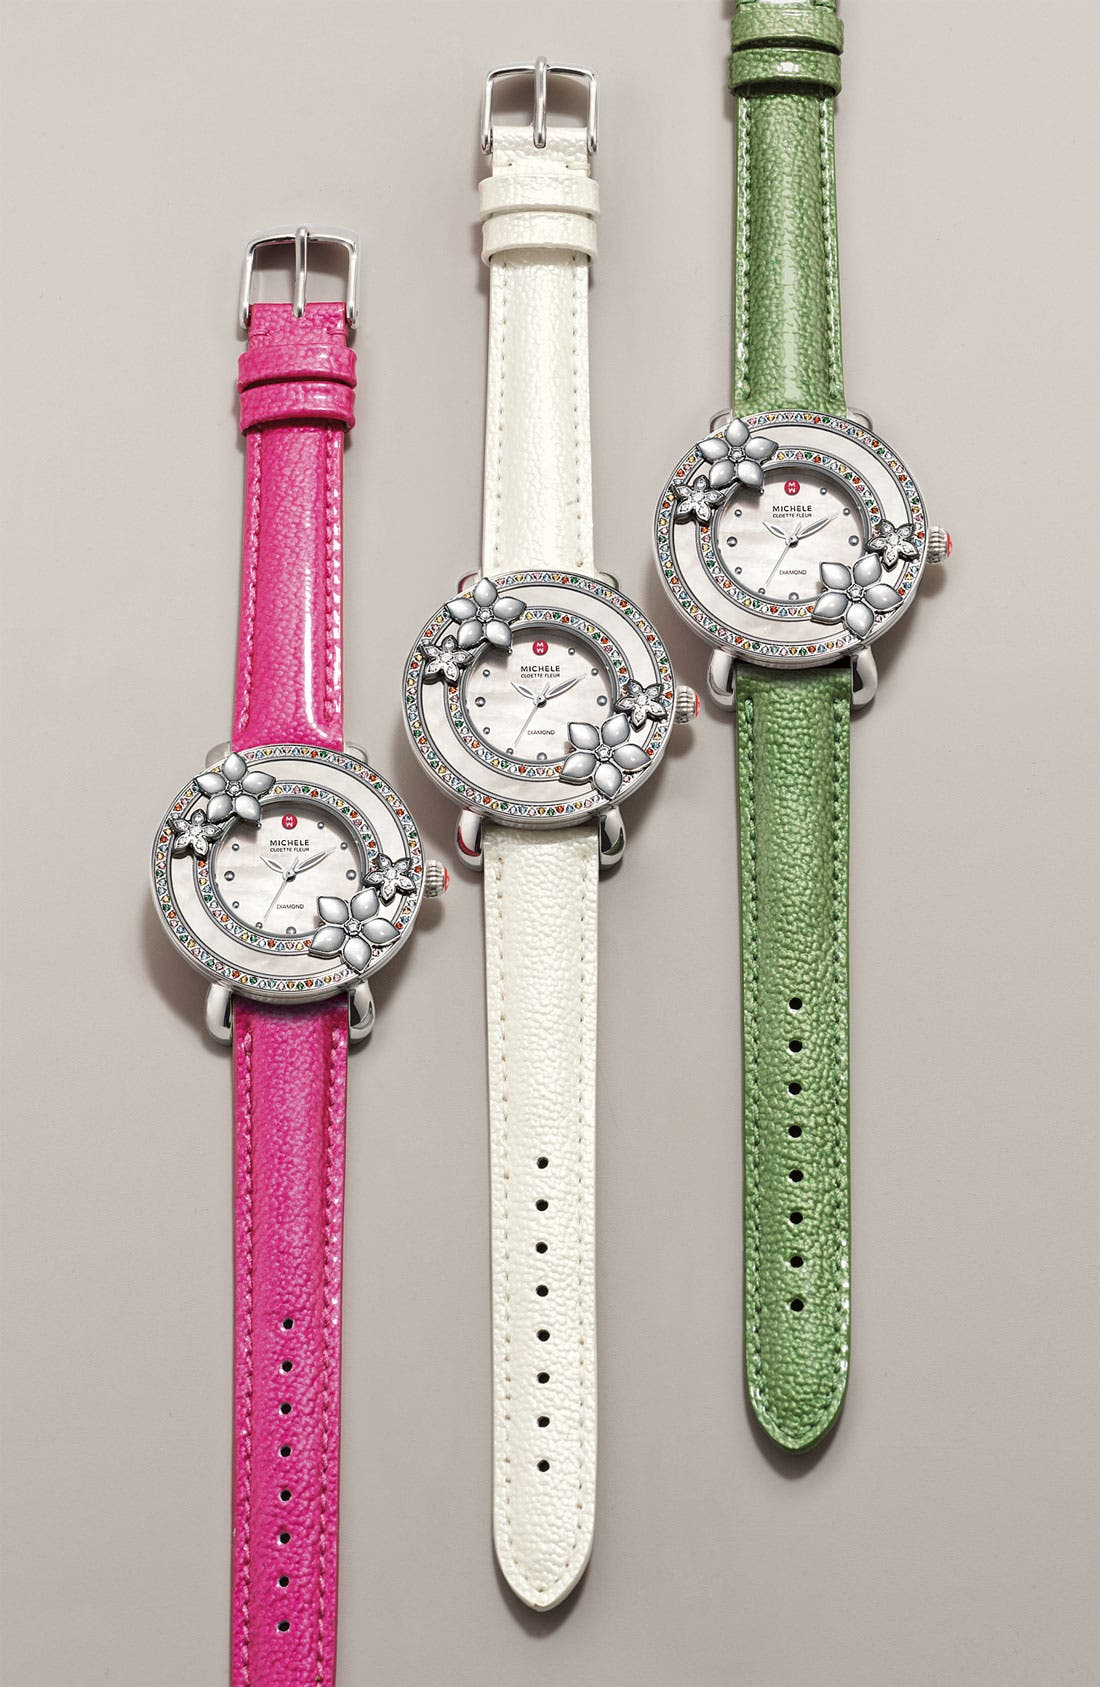 Main Image - MICHELE 'Cloette Fleur' Customizable Watch